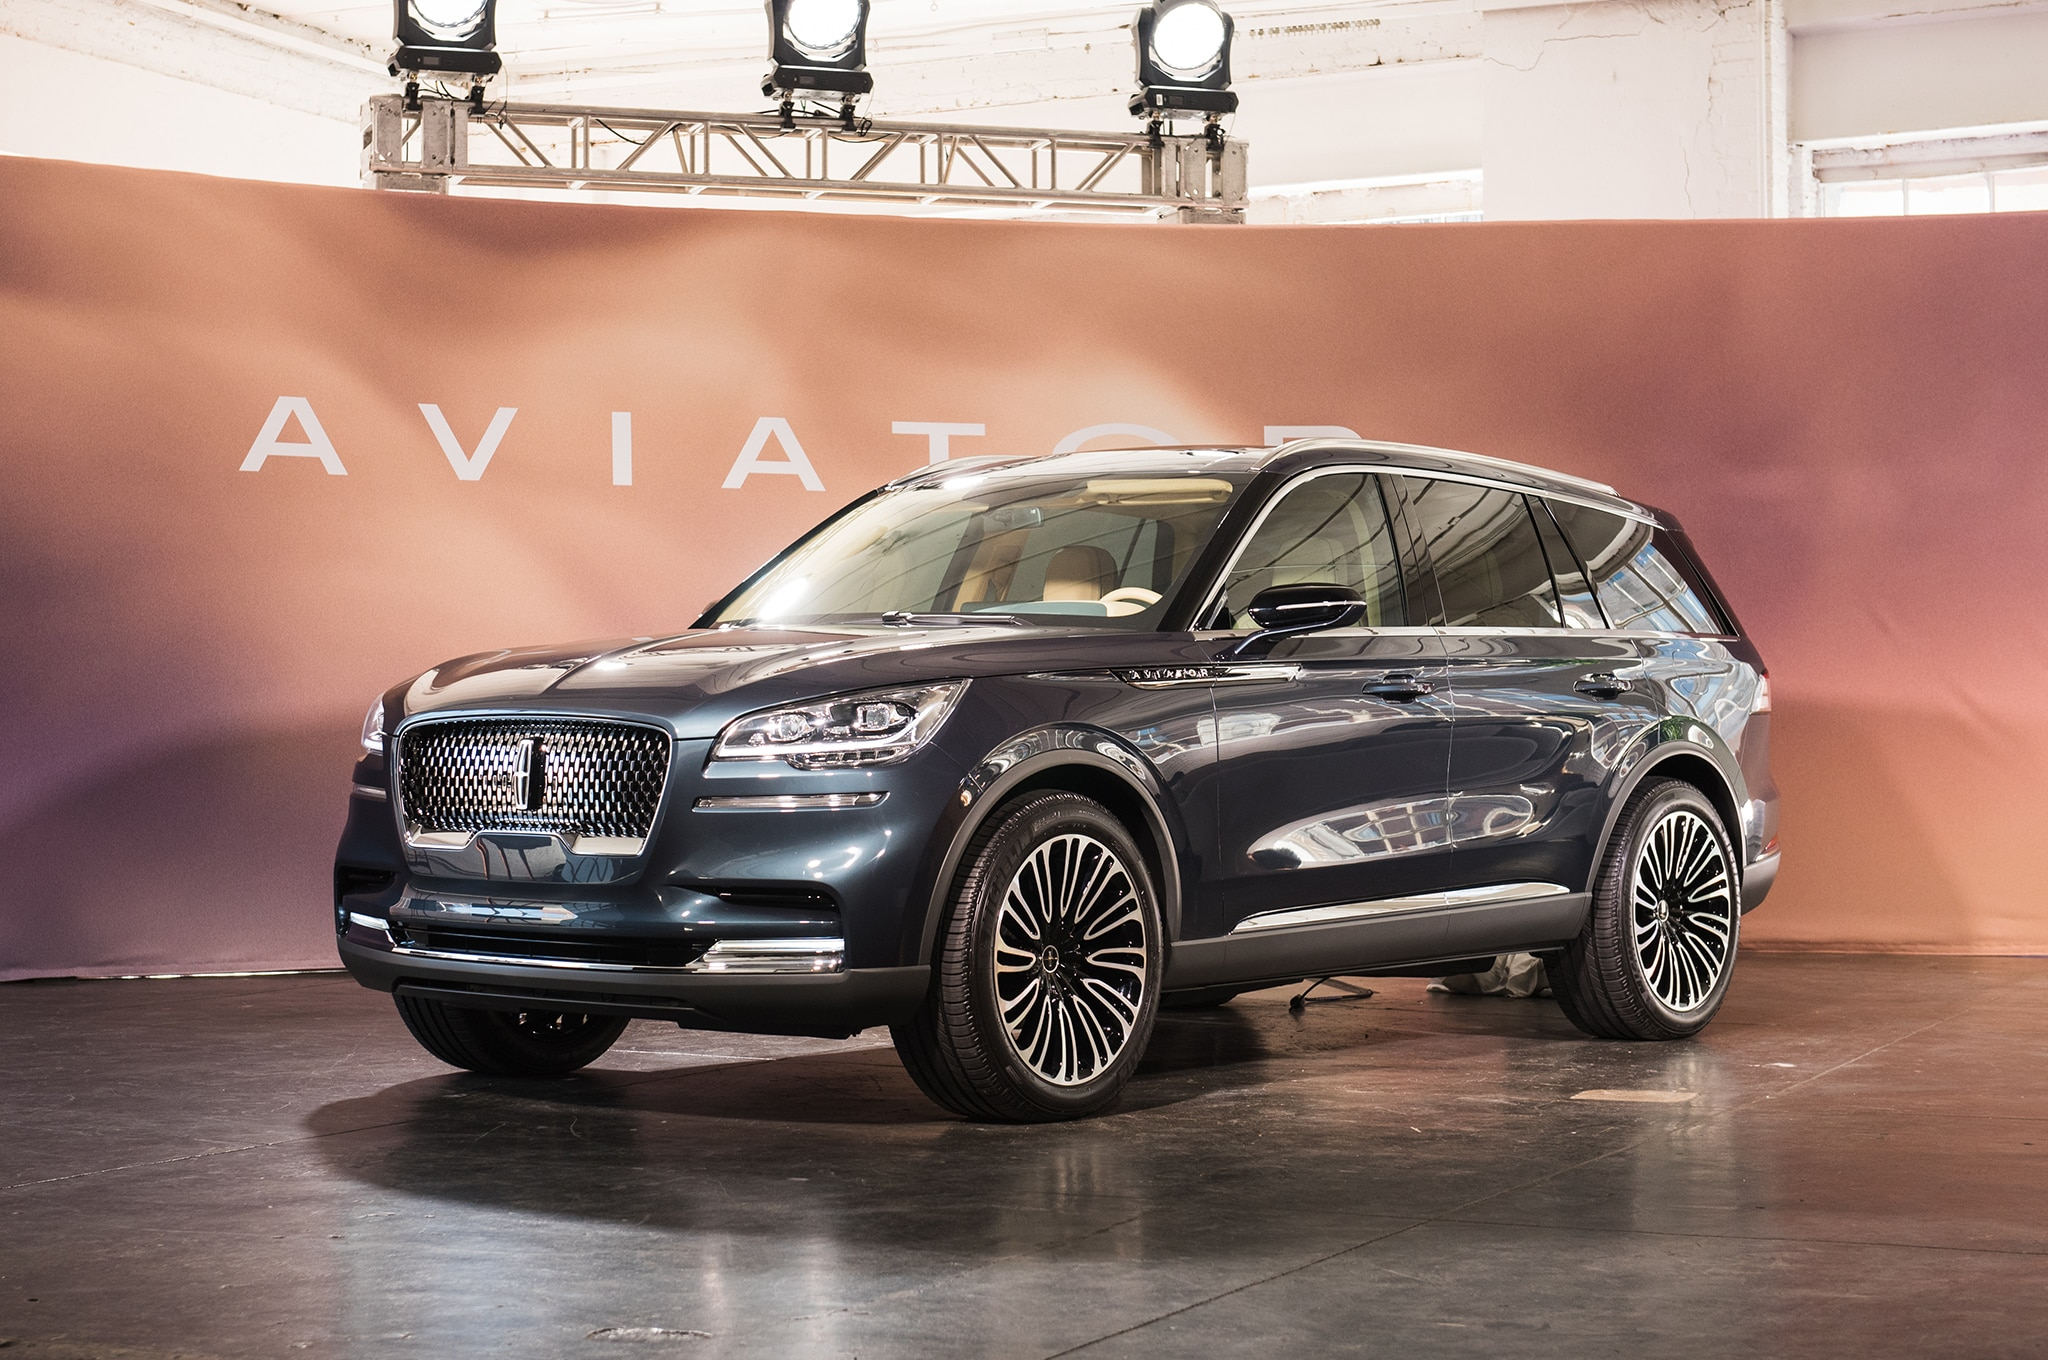 2018 Lincoln Aviator Front Three Quarter 01 1